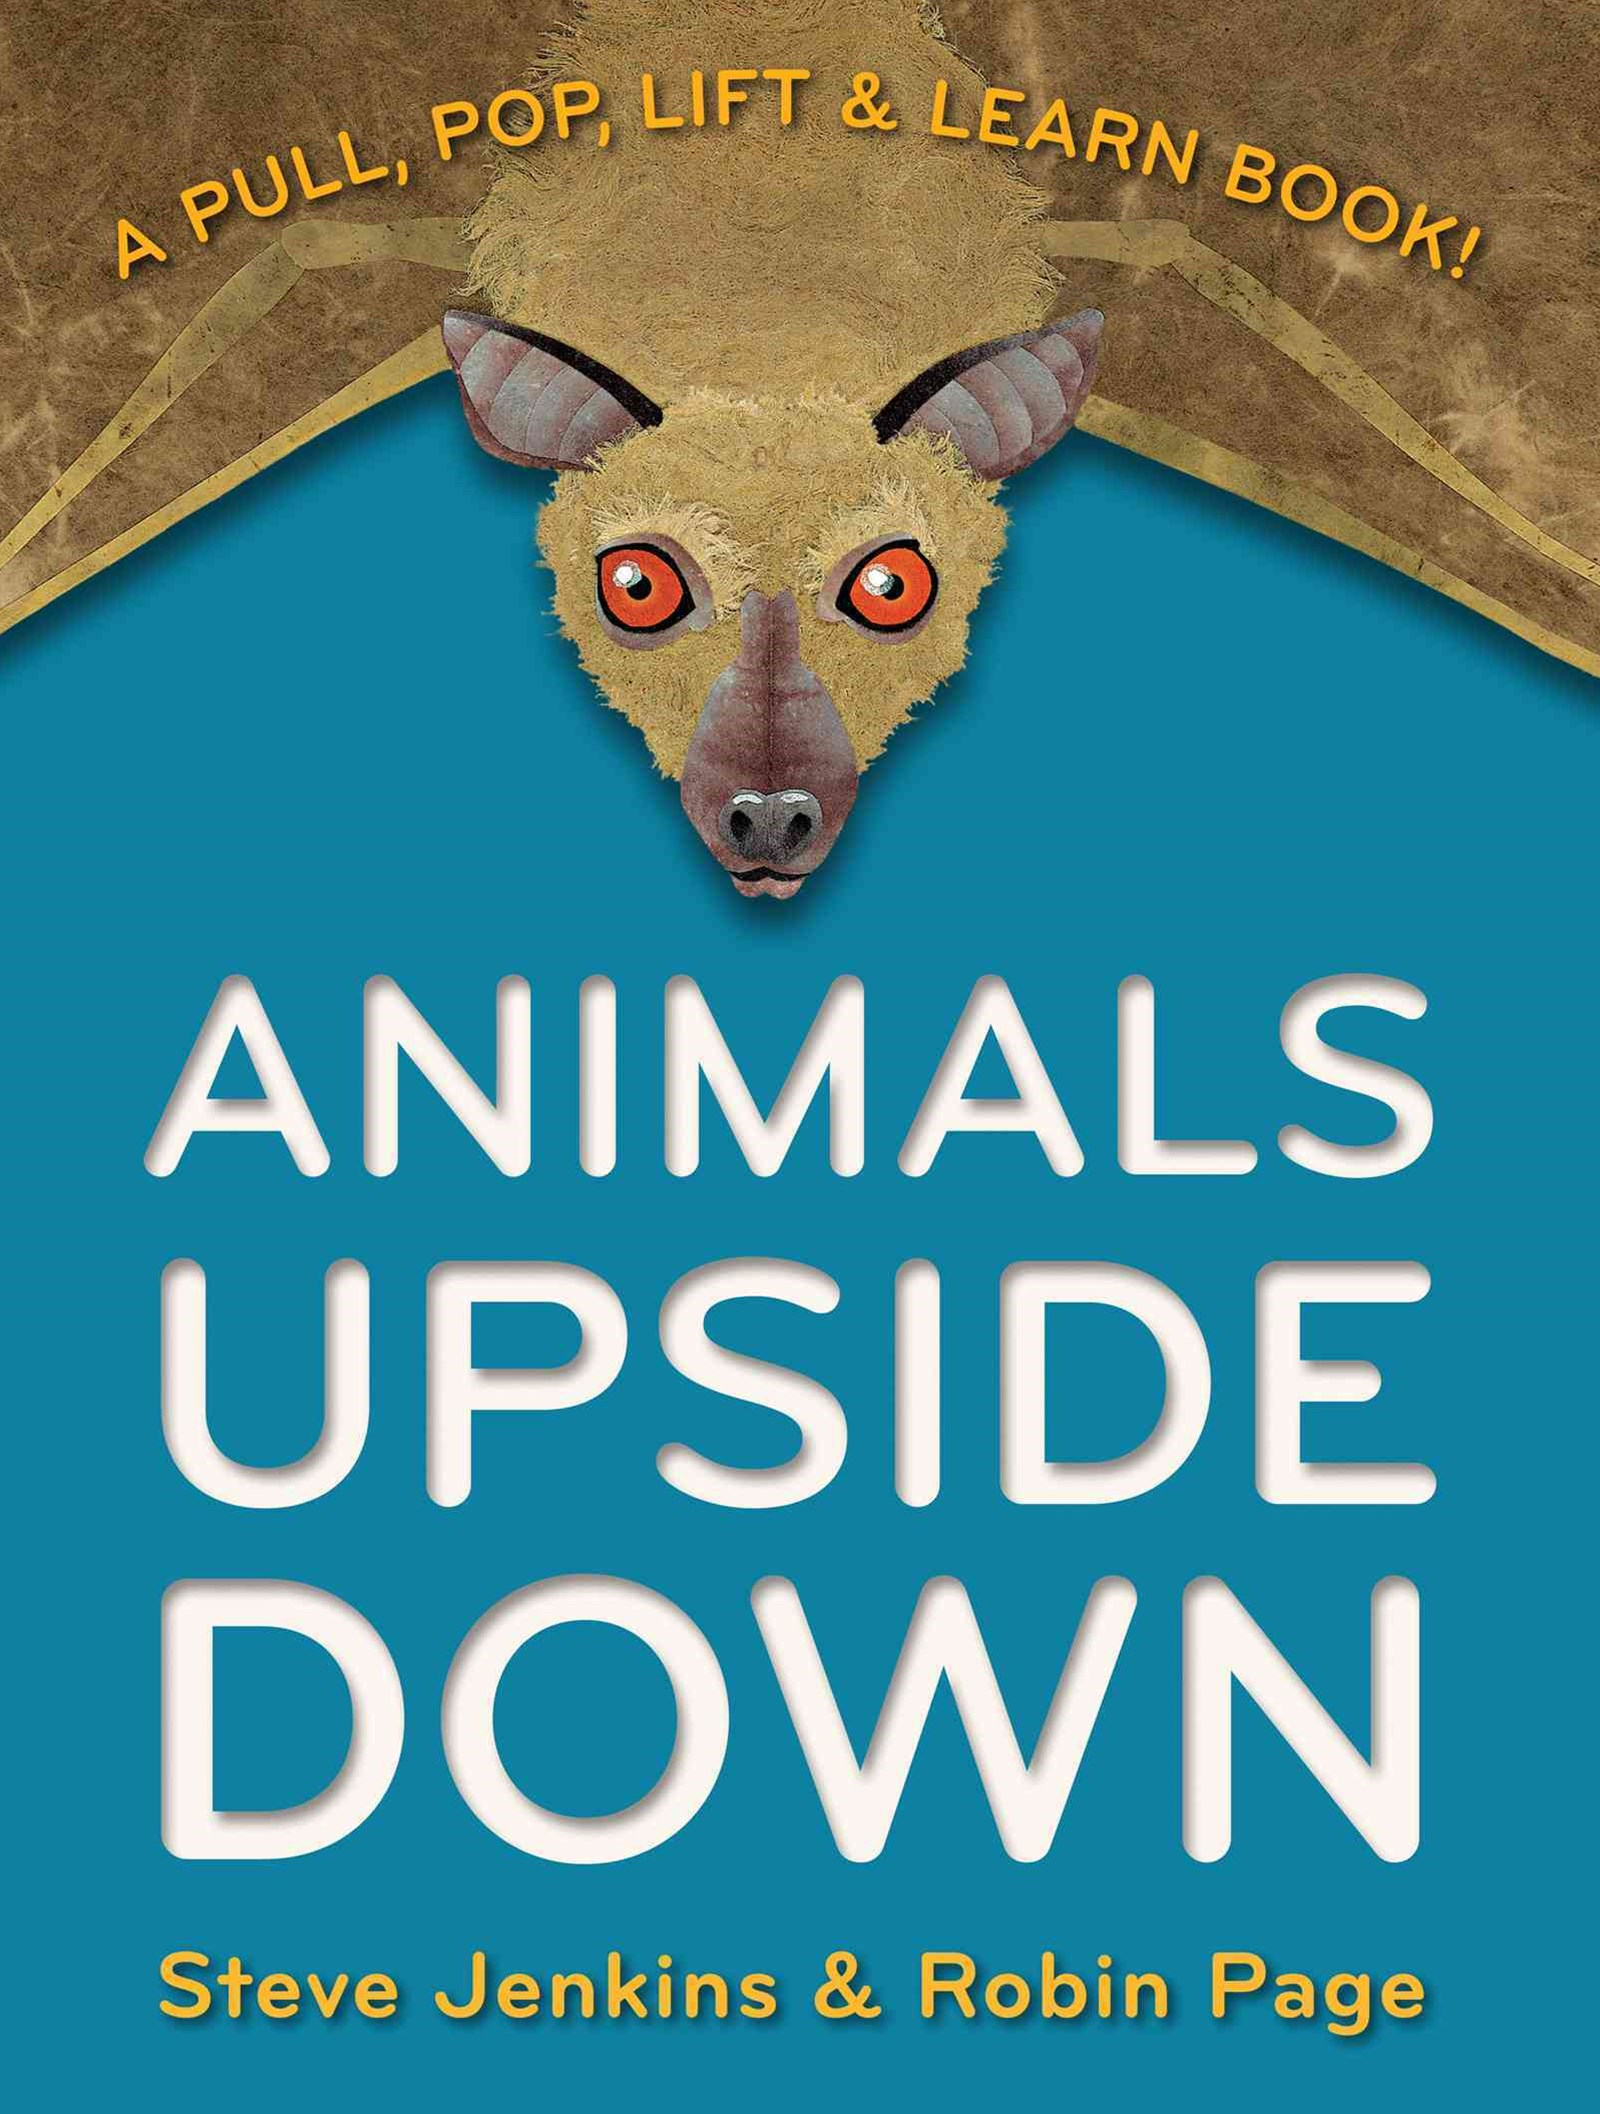 Animals Upside Down: A Pull, Pop, Lift and Learn Book!